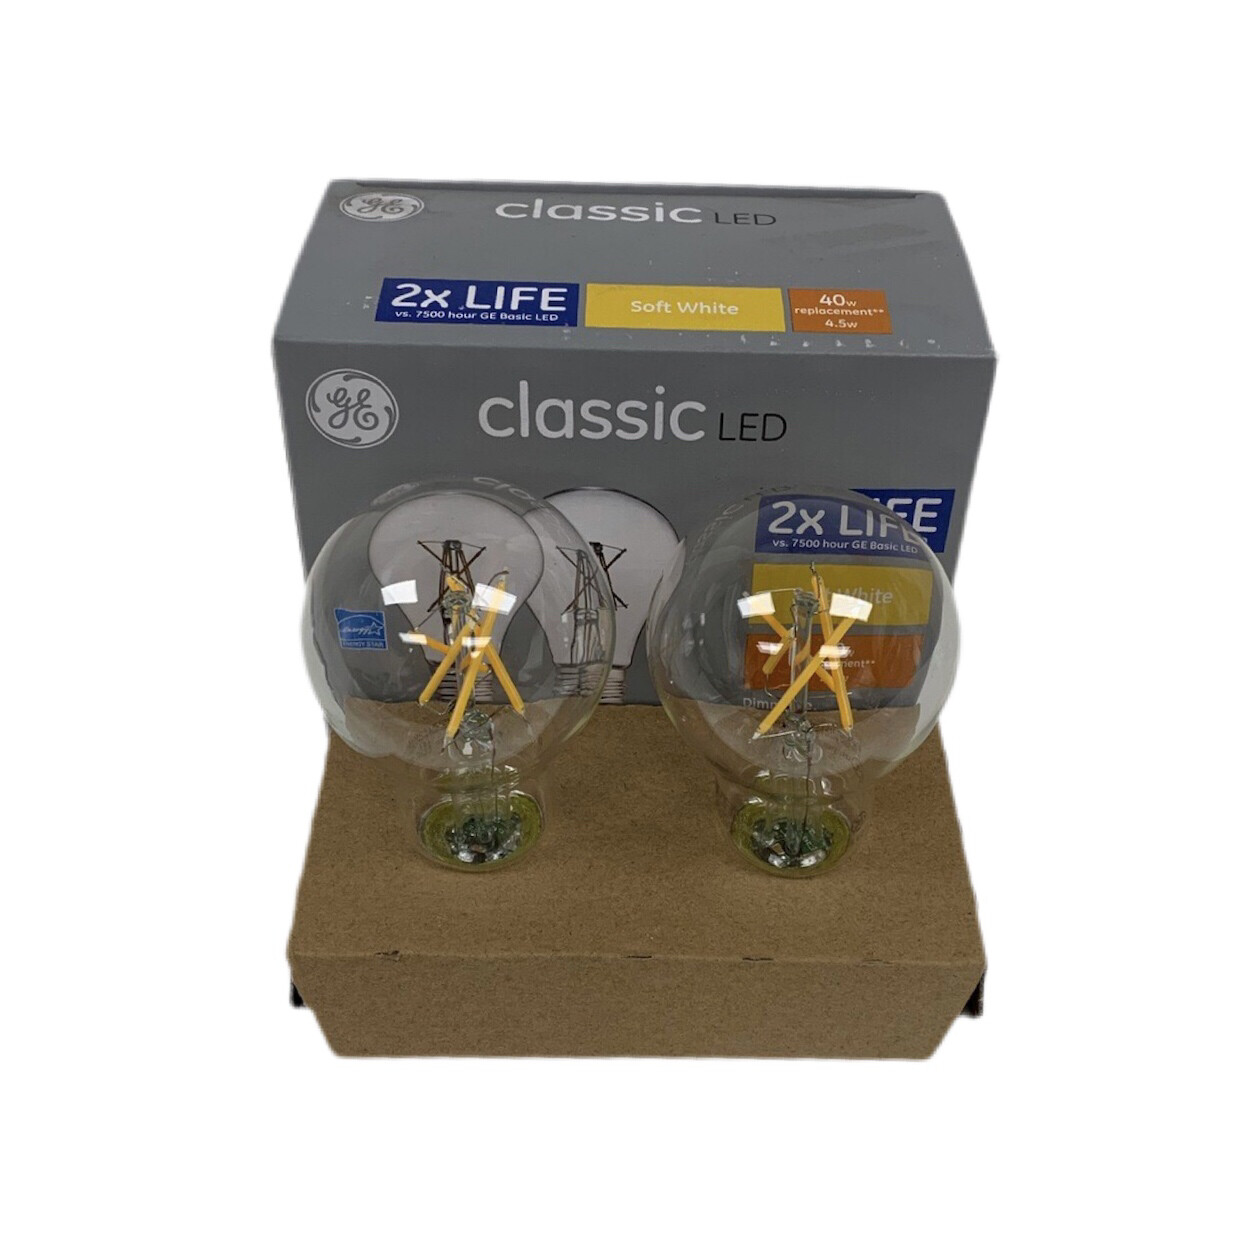 GE Classic LED Soft White Dimmable Light Bulbs 2 Pack